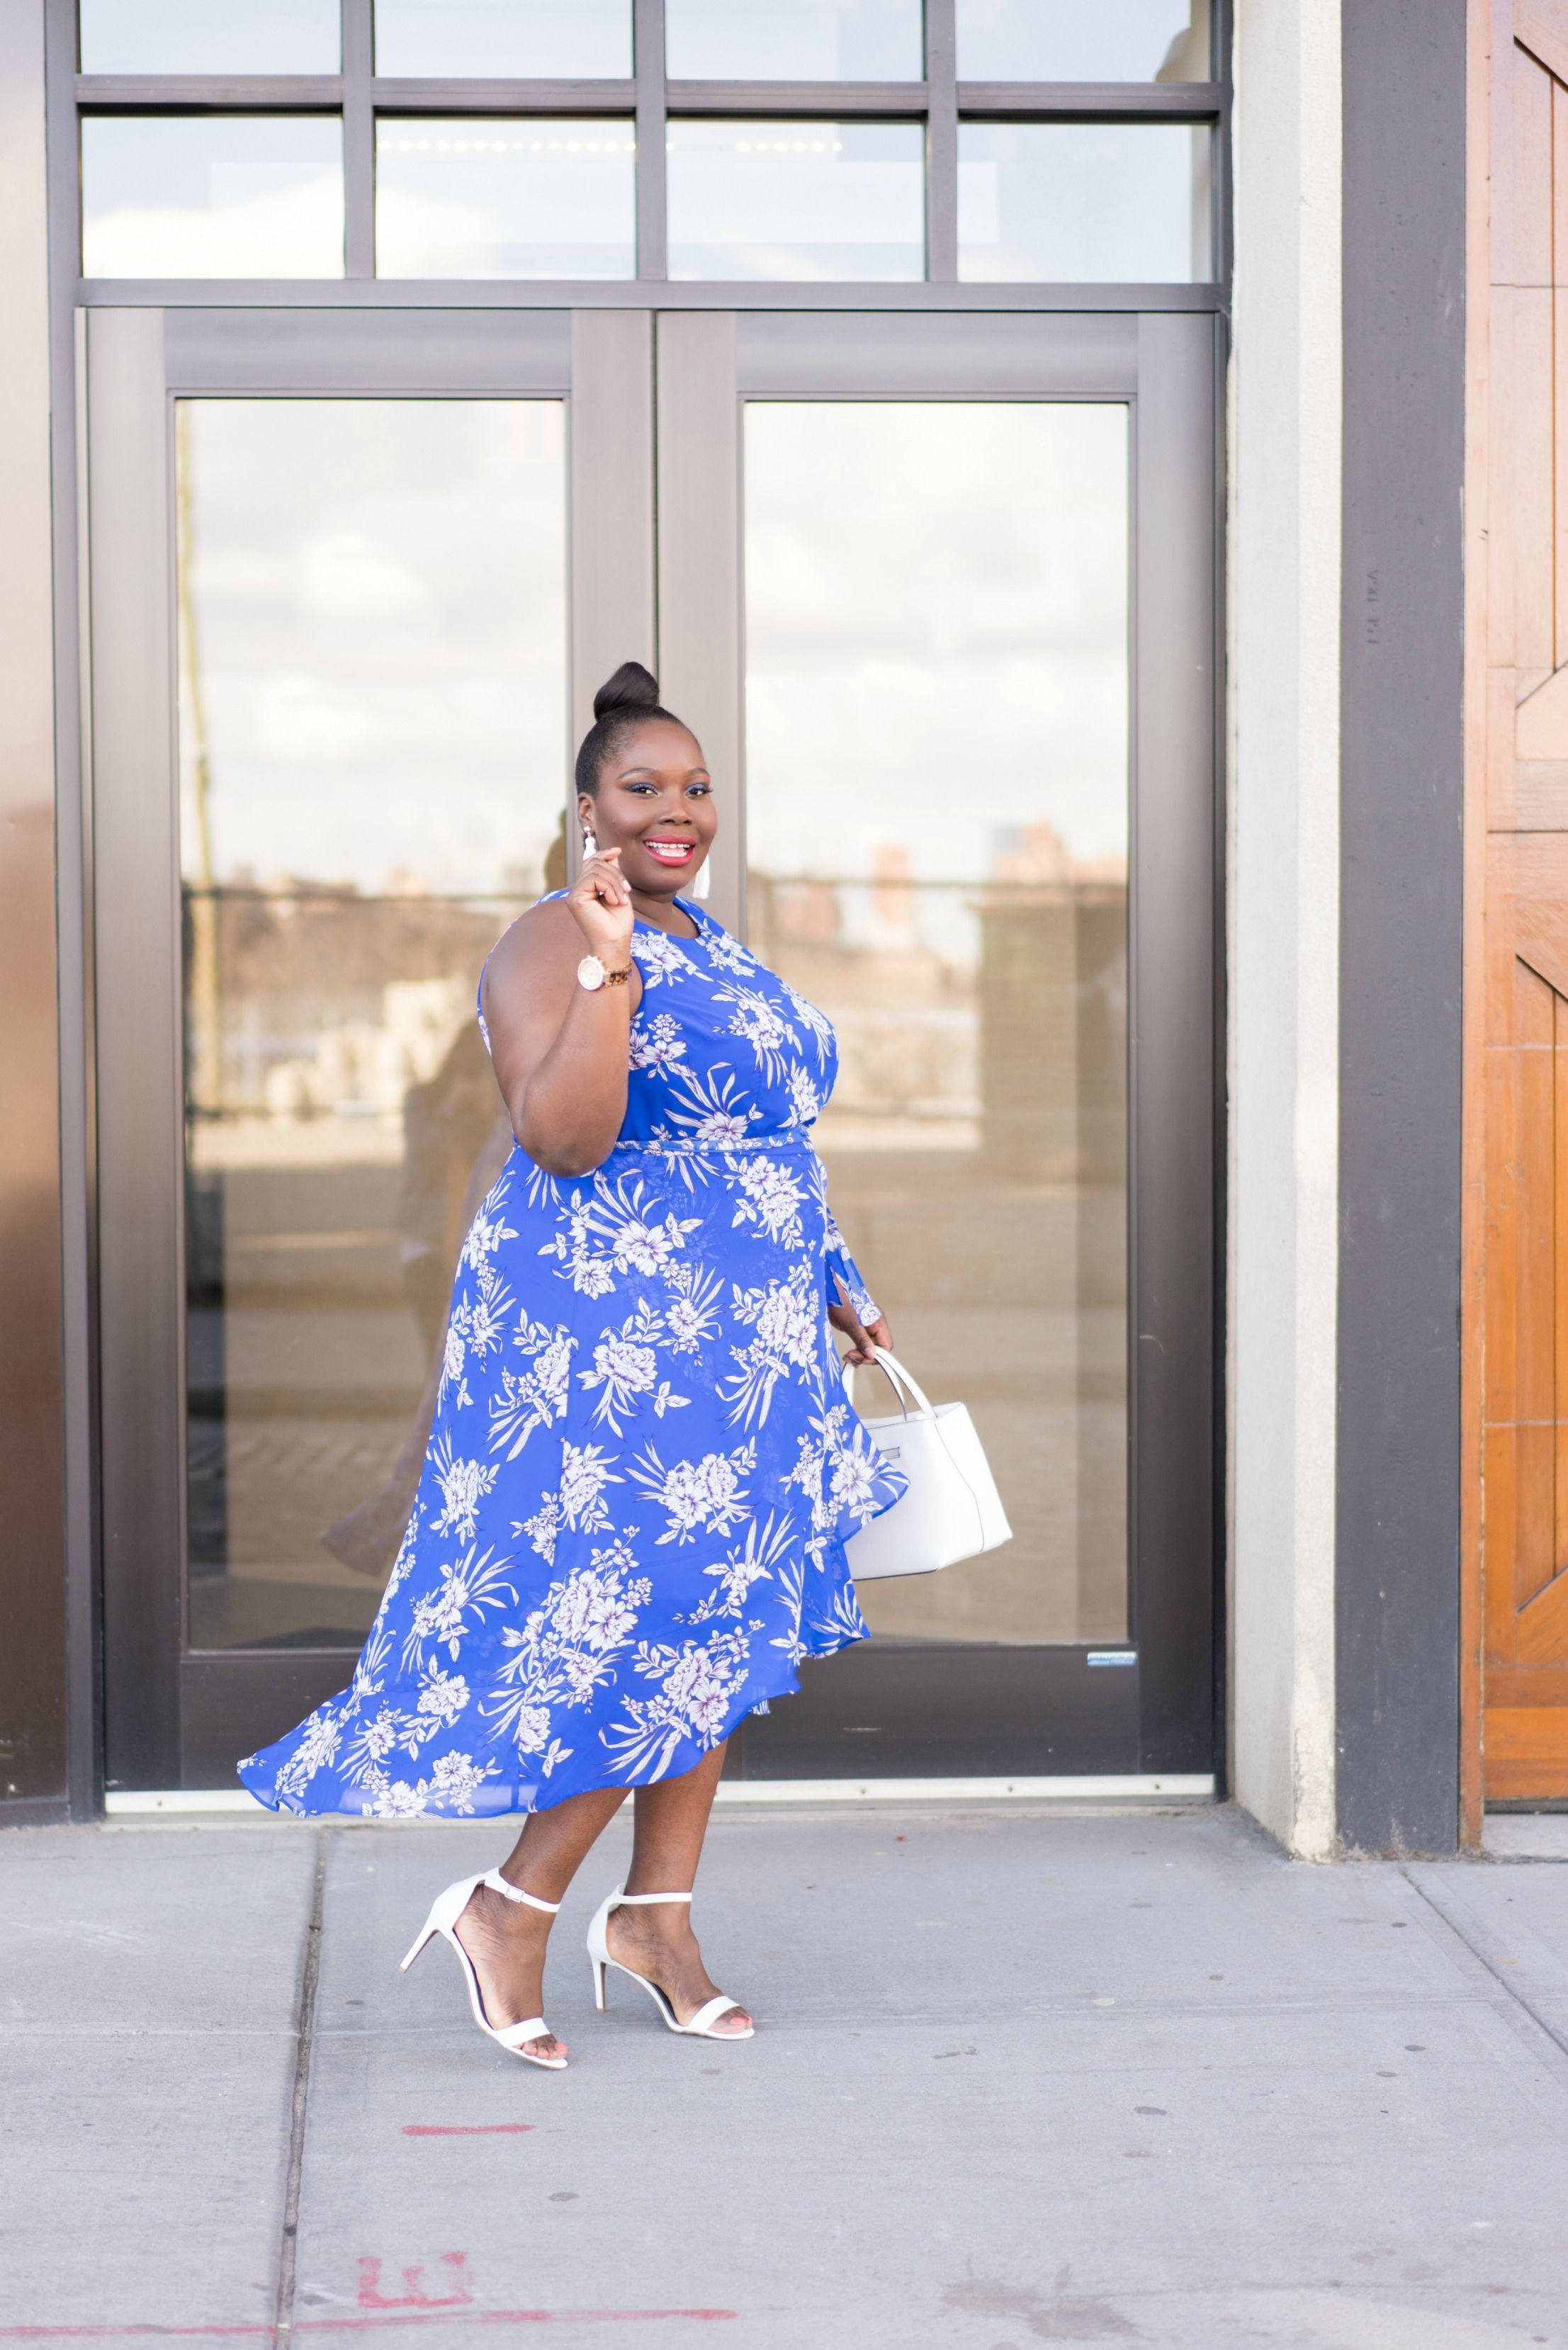 Plus Size Spring Dresses If You Re Looking For Some Stylish Fun And Flirty Spring Dresses Plus Size Spring Dresses Perfect Spring Outfit Spring Fashion Trends [ 3317 x 2213 Pixel ]